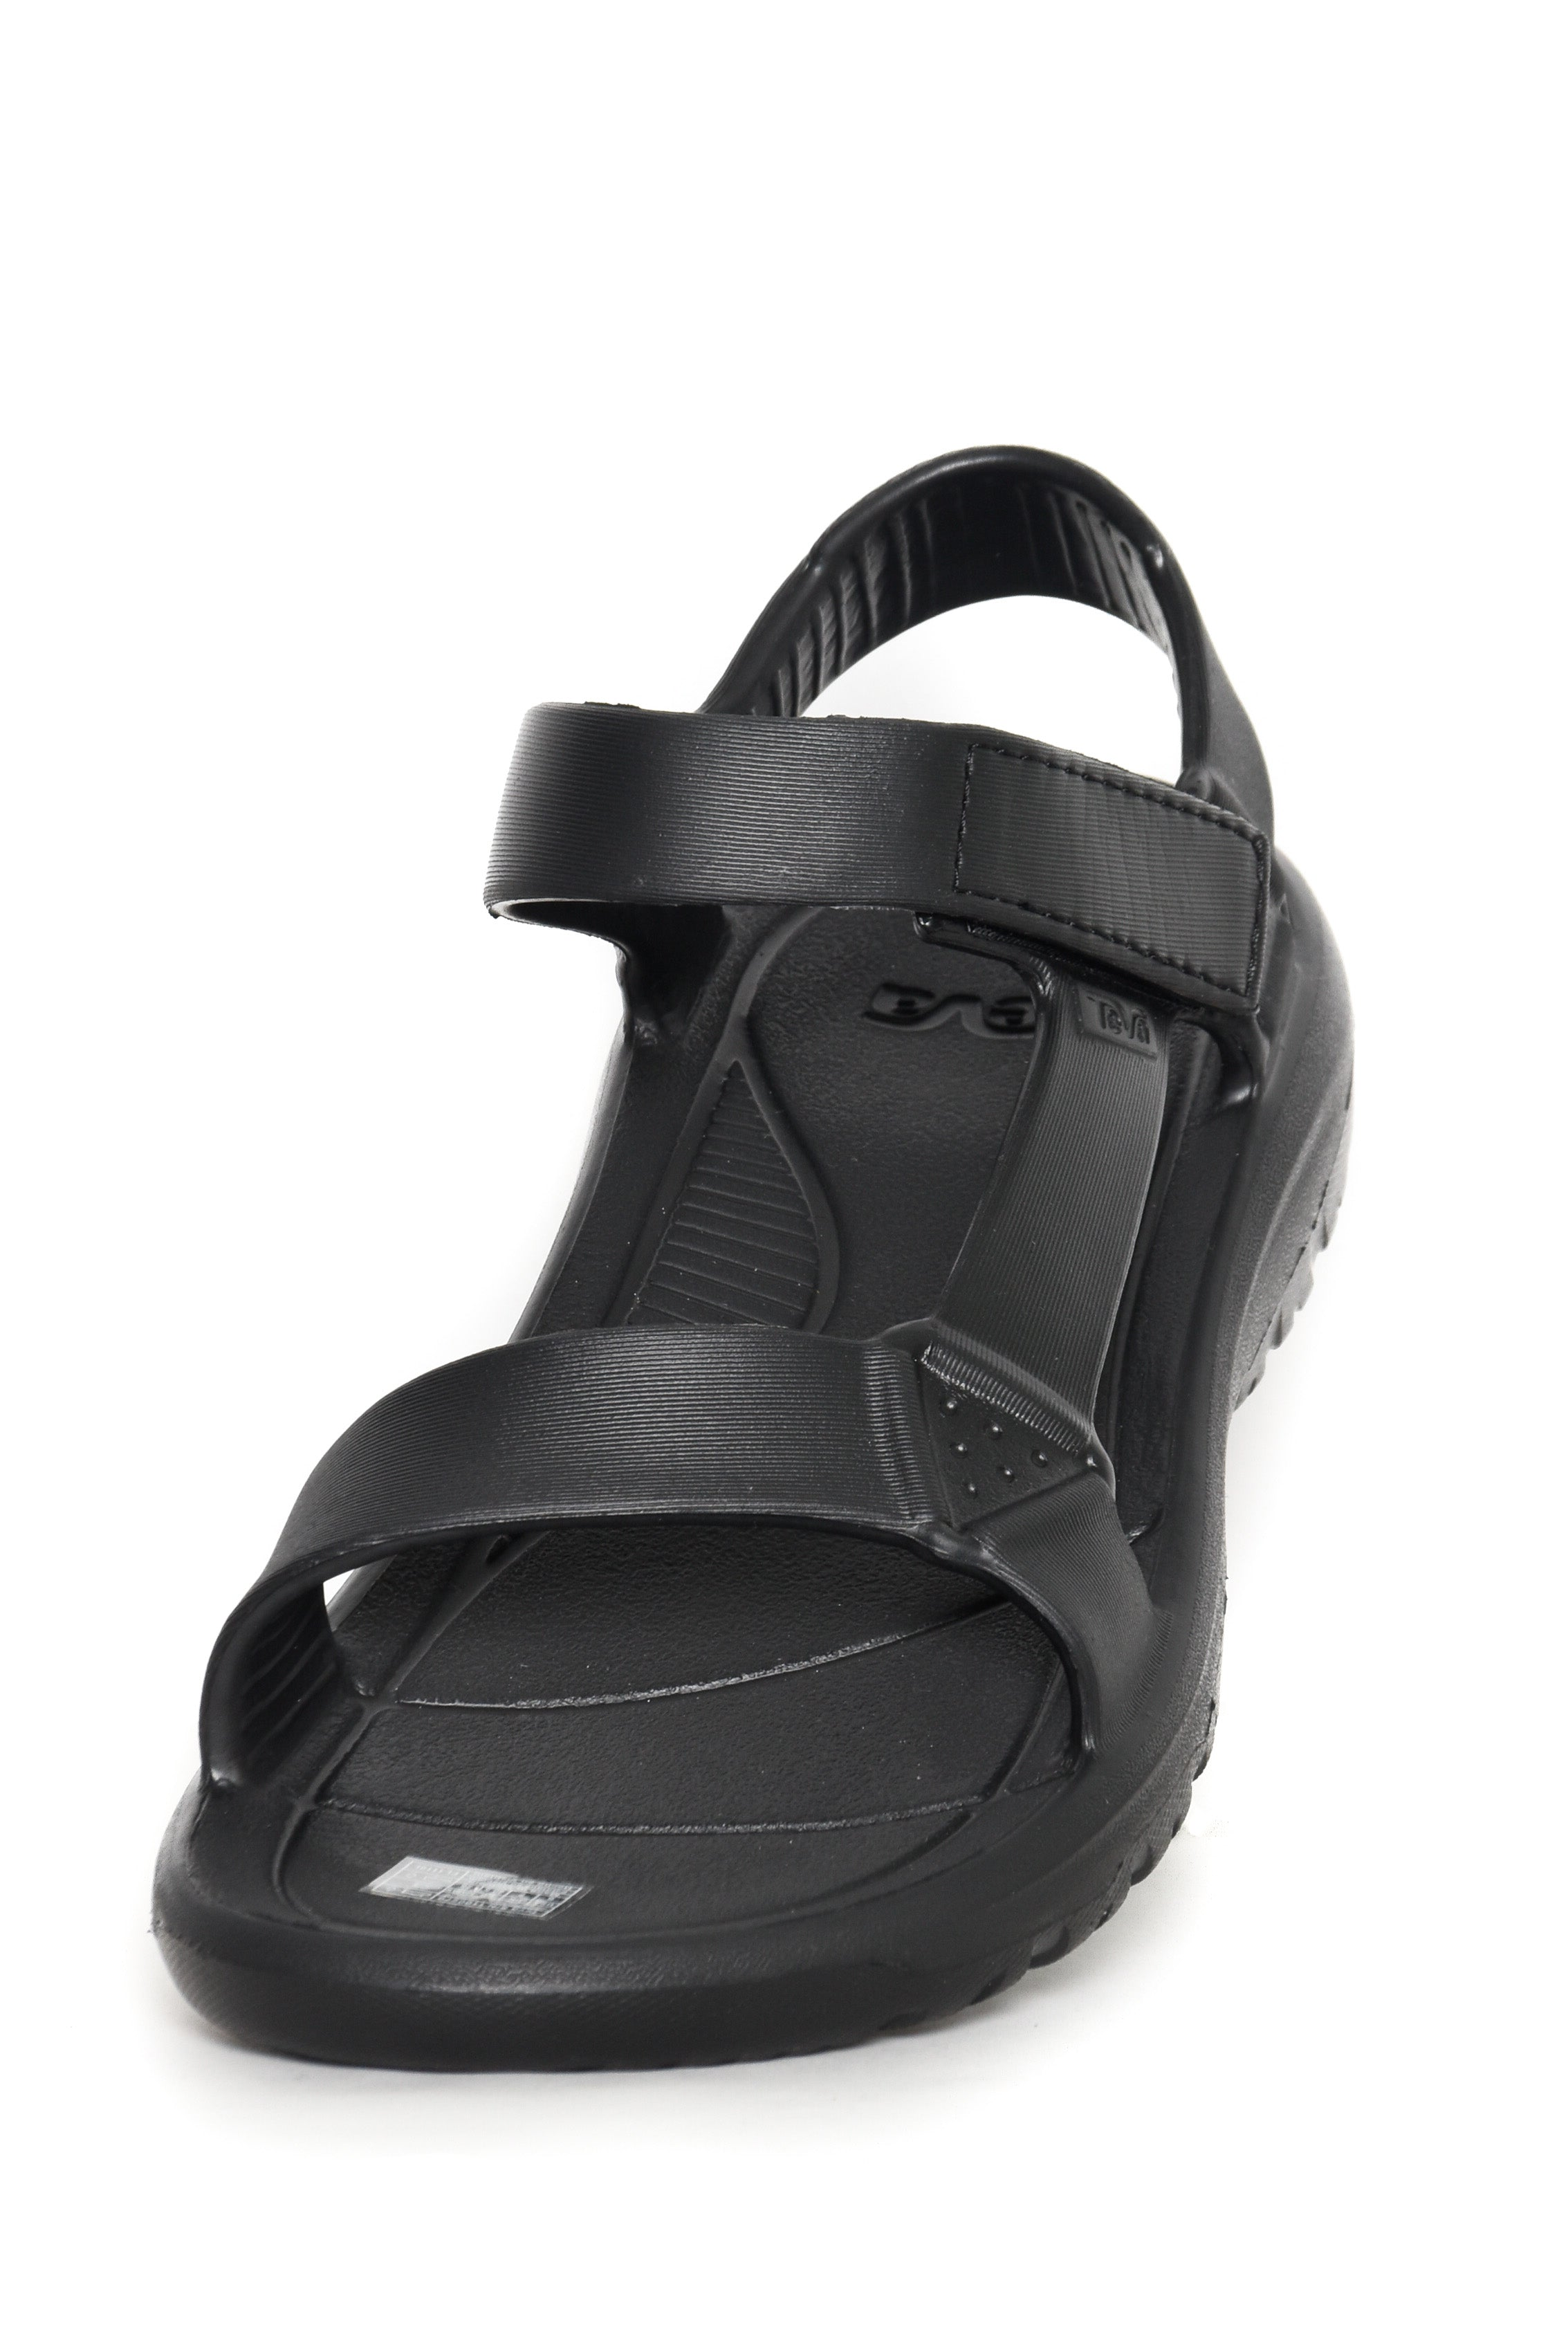 Teva Original Hurricane Drift Sandal black